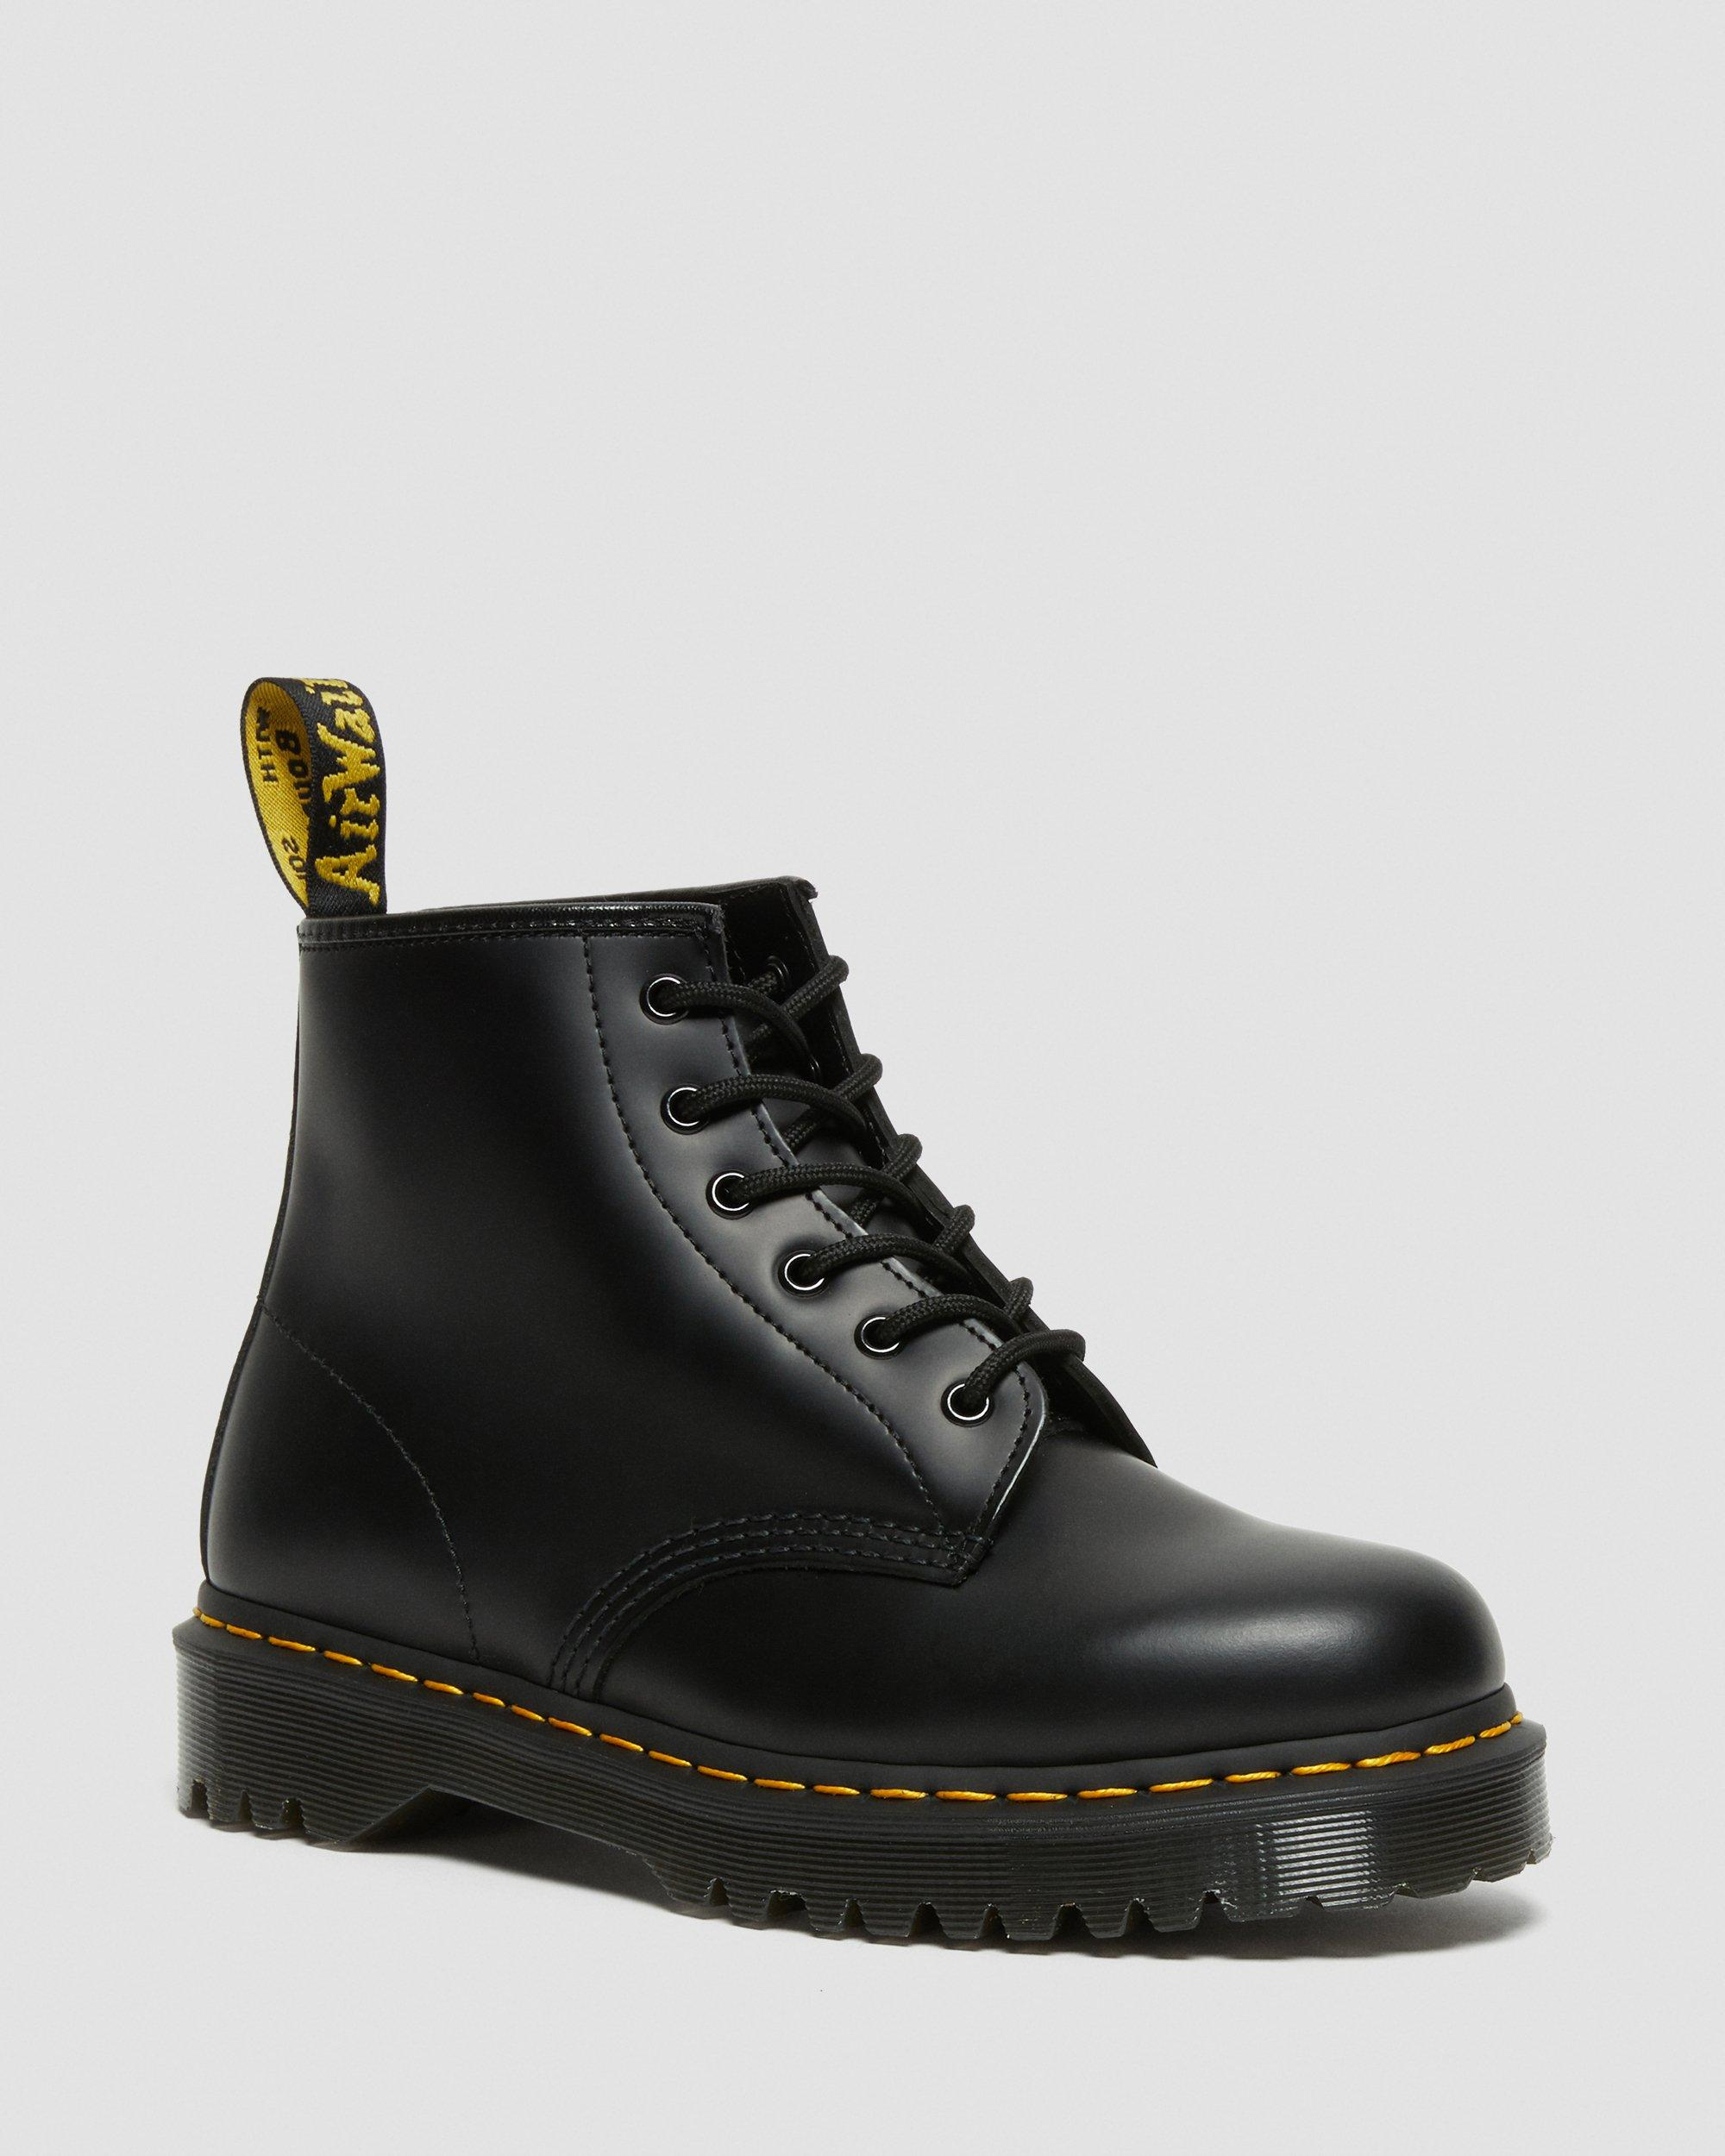 101 BEX SMOOTH LEATHER ANKLE BOOTS | Dr